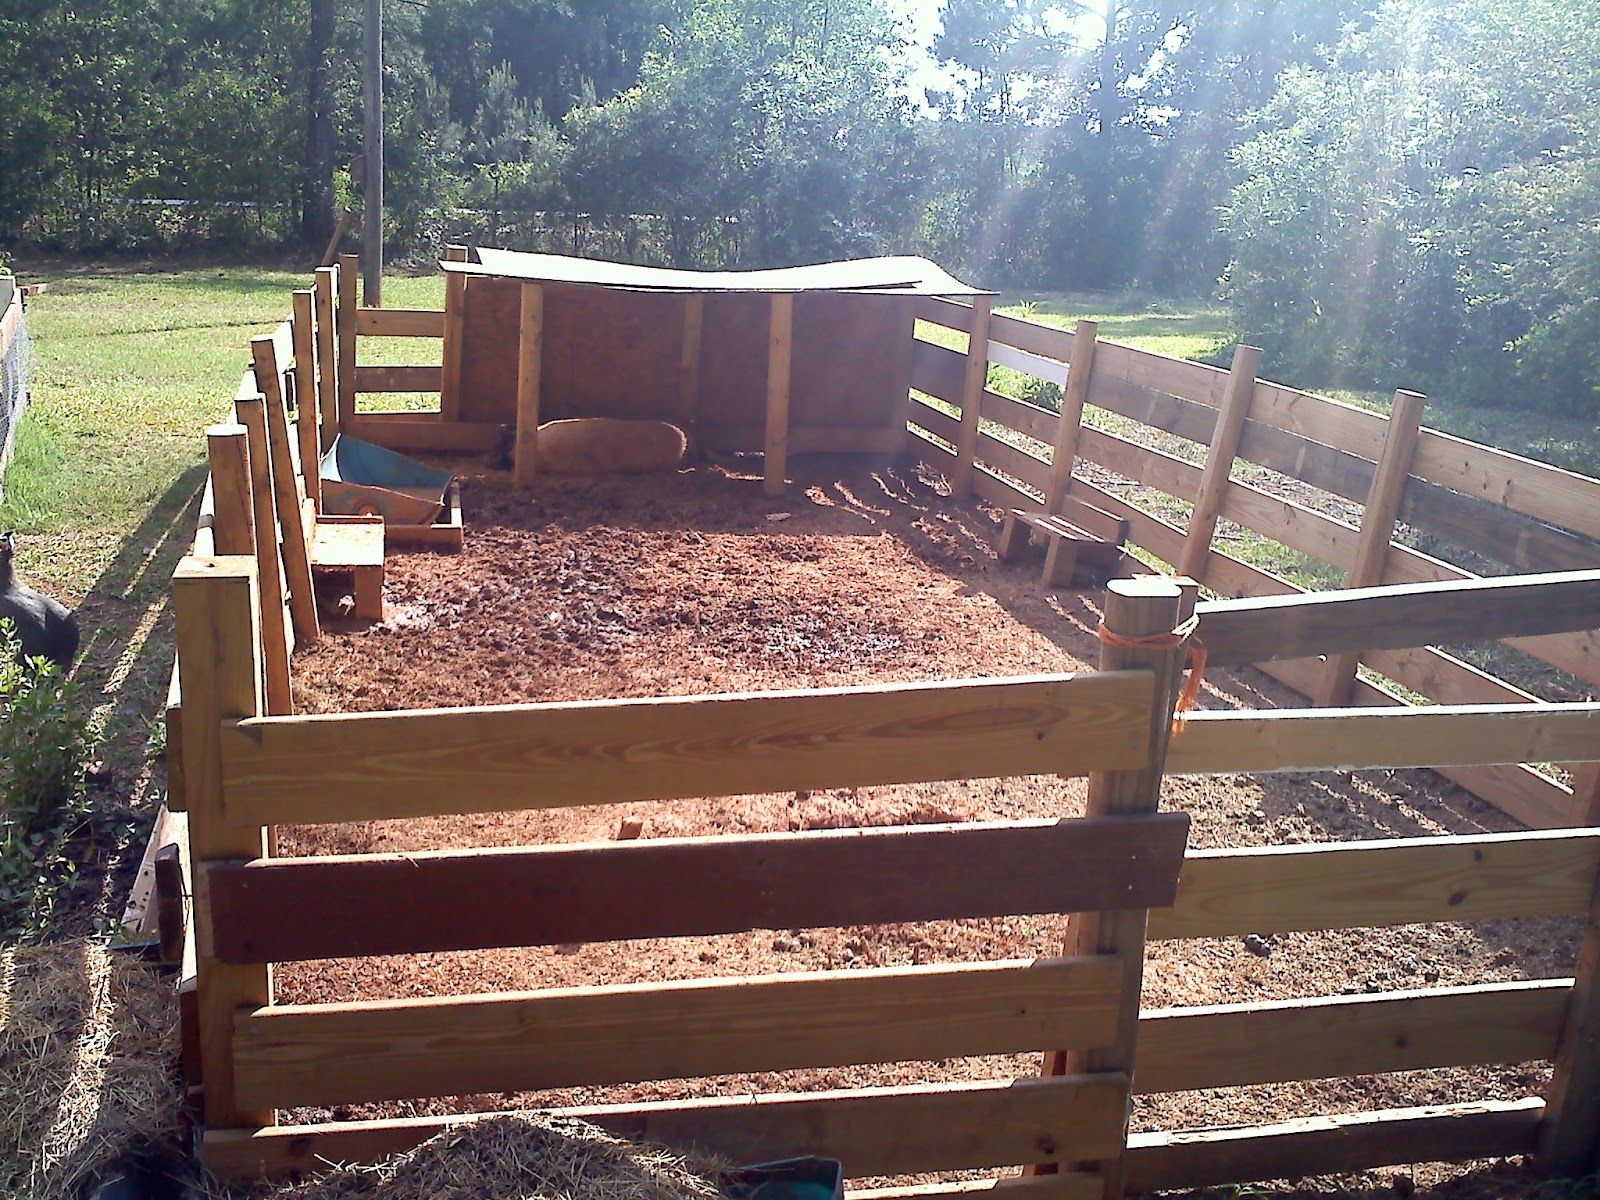 A And B Farm How To Build A Pig Pen Pig Pen Pig Farming Pot Belly Pigs